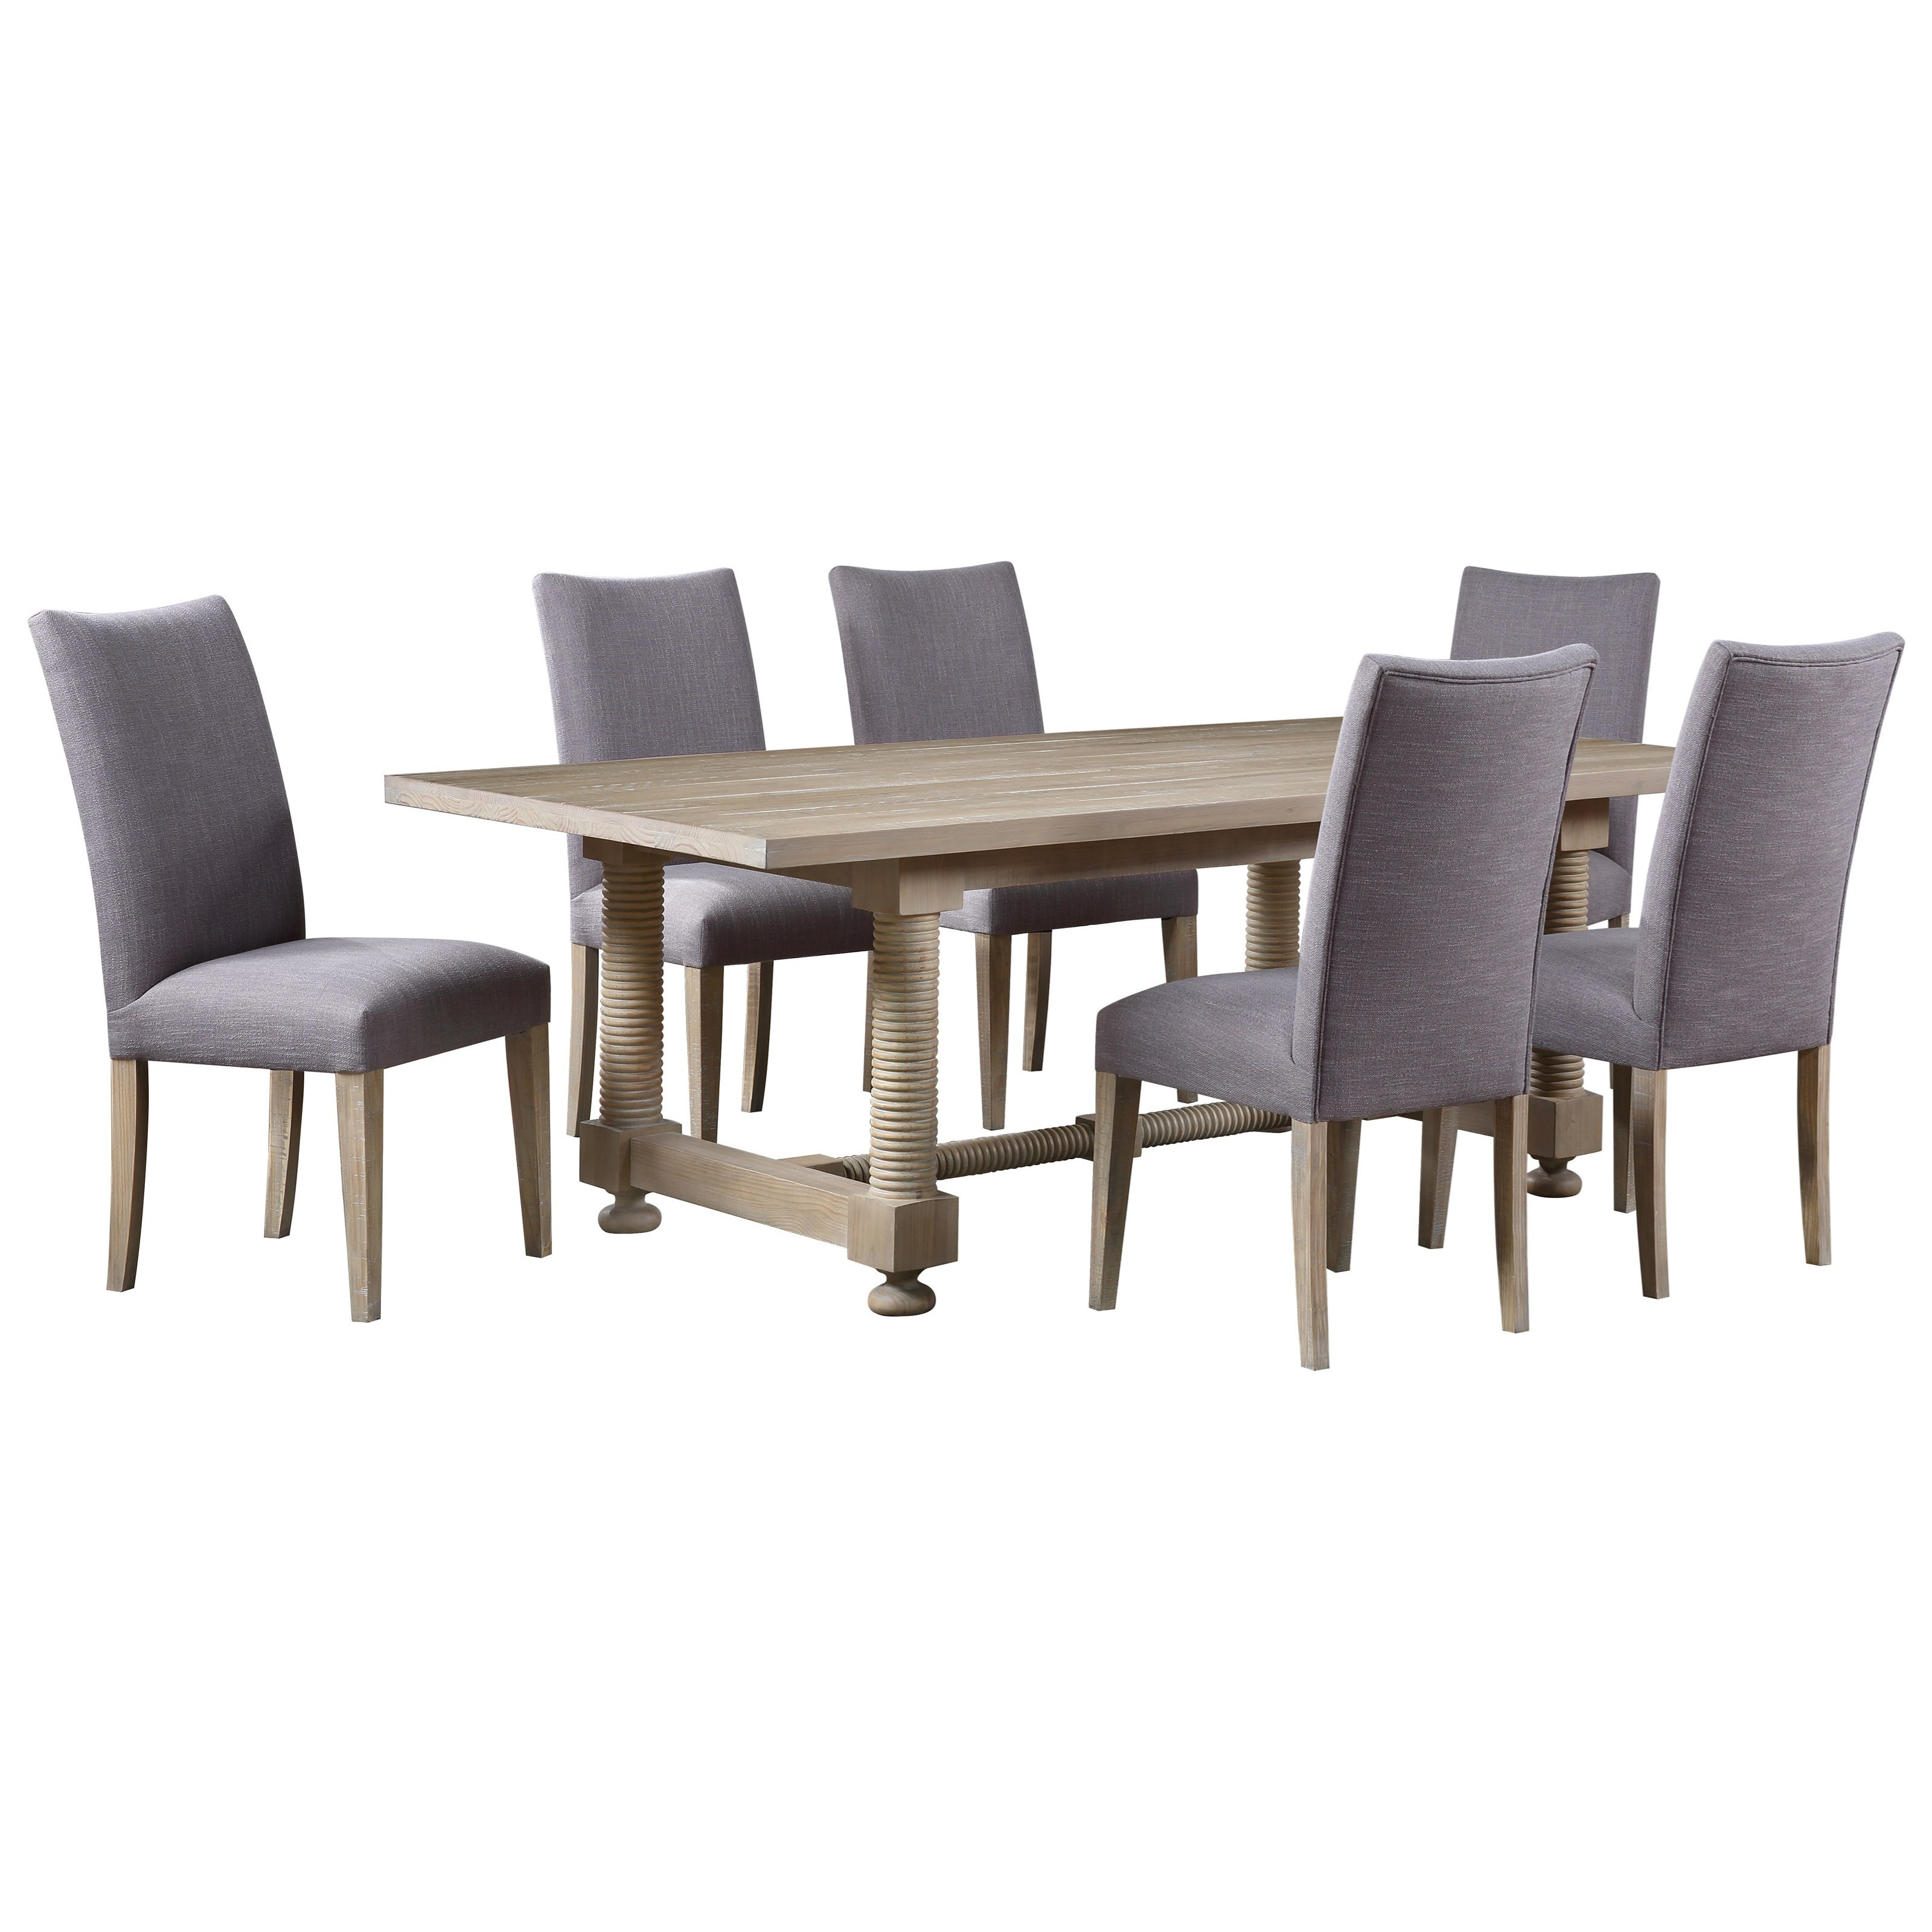 Barrister 7-Piece Table and Chair Set by Coast to Coast Imports at Johnny Janosik